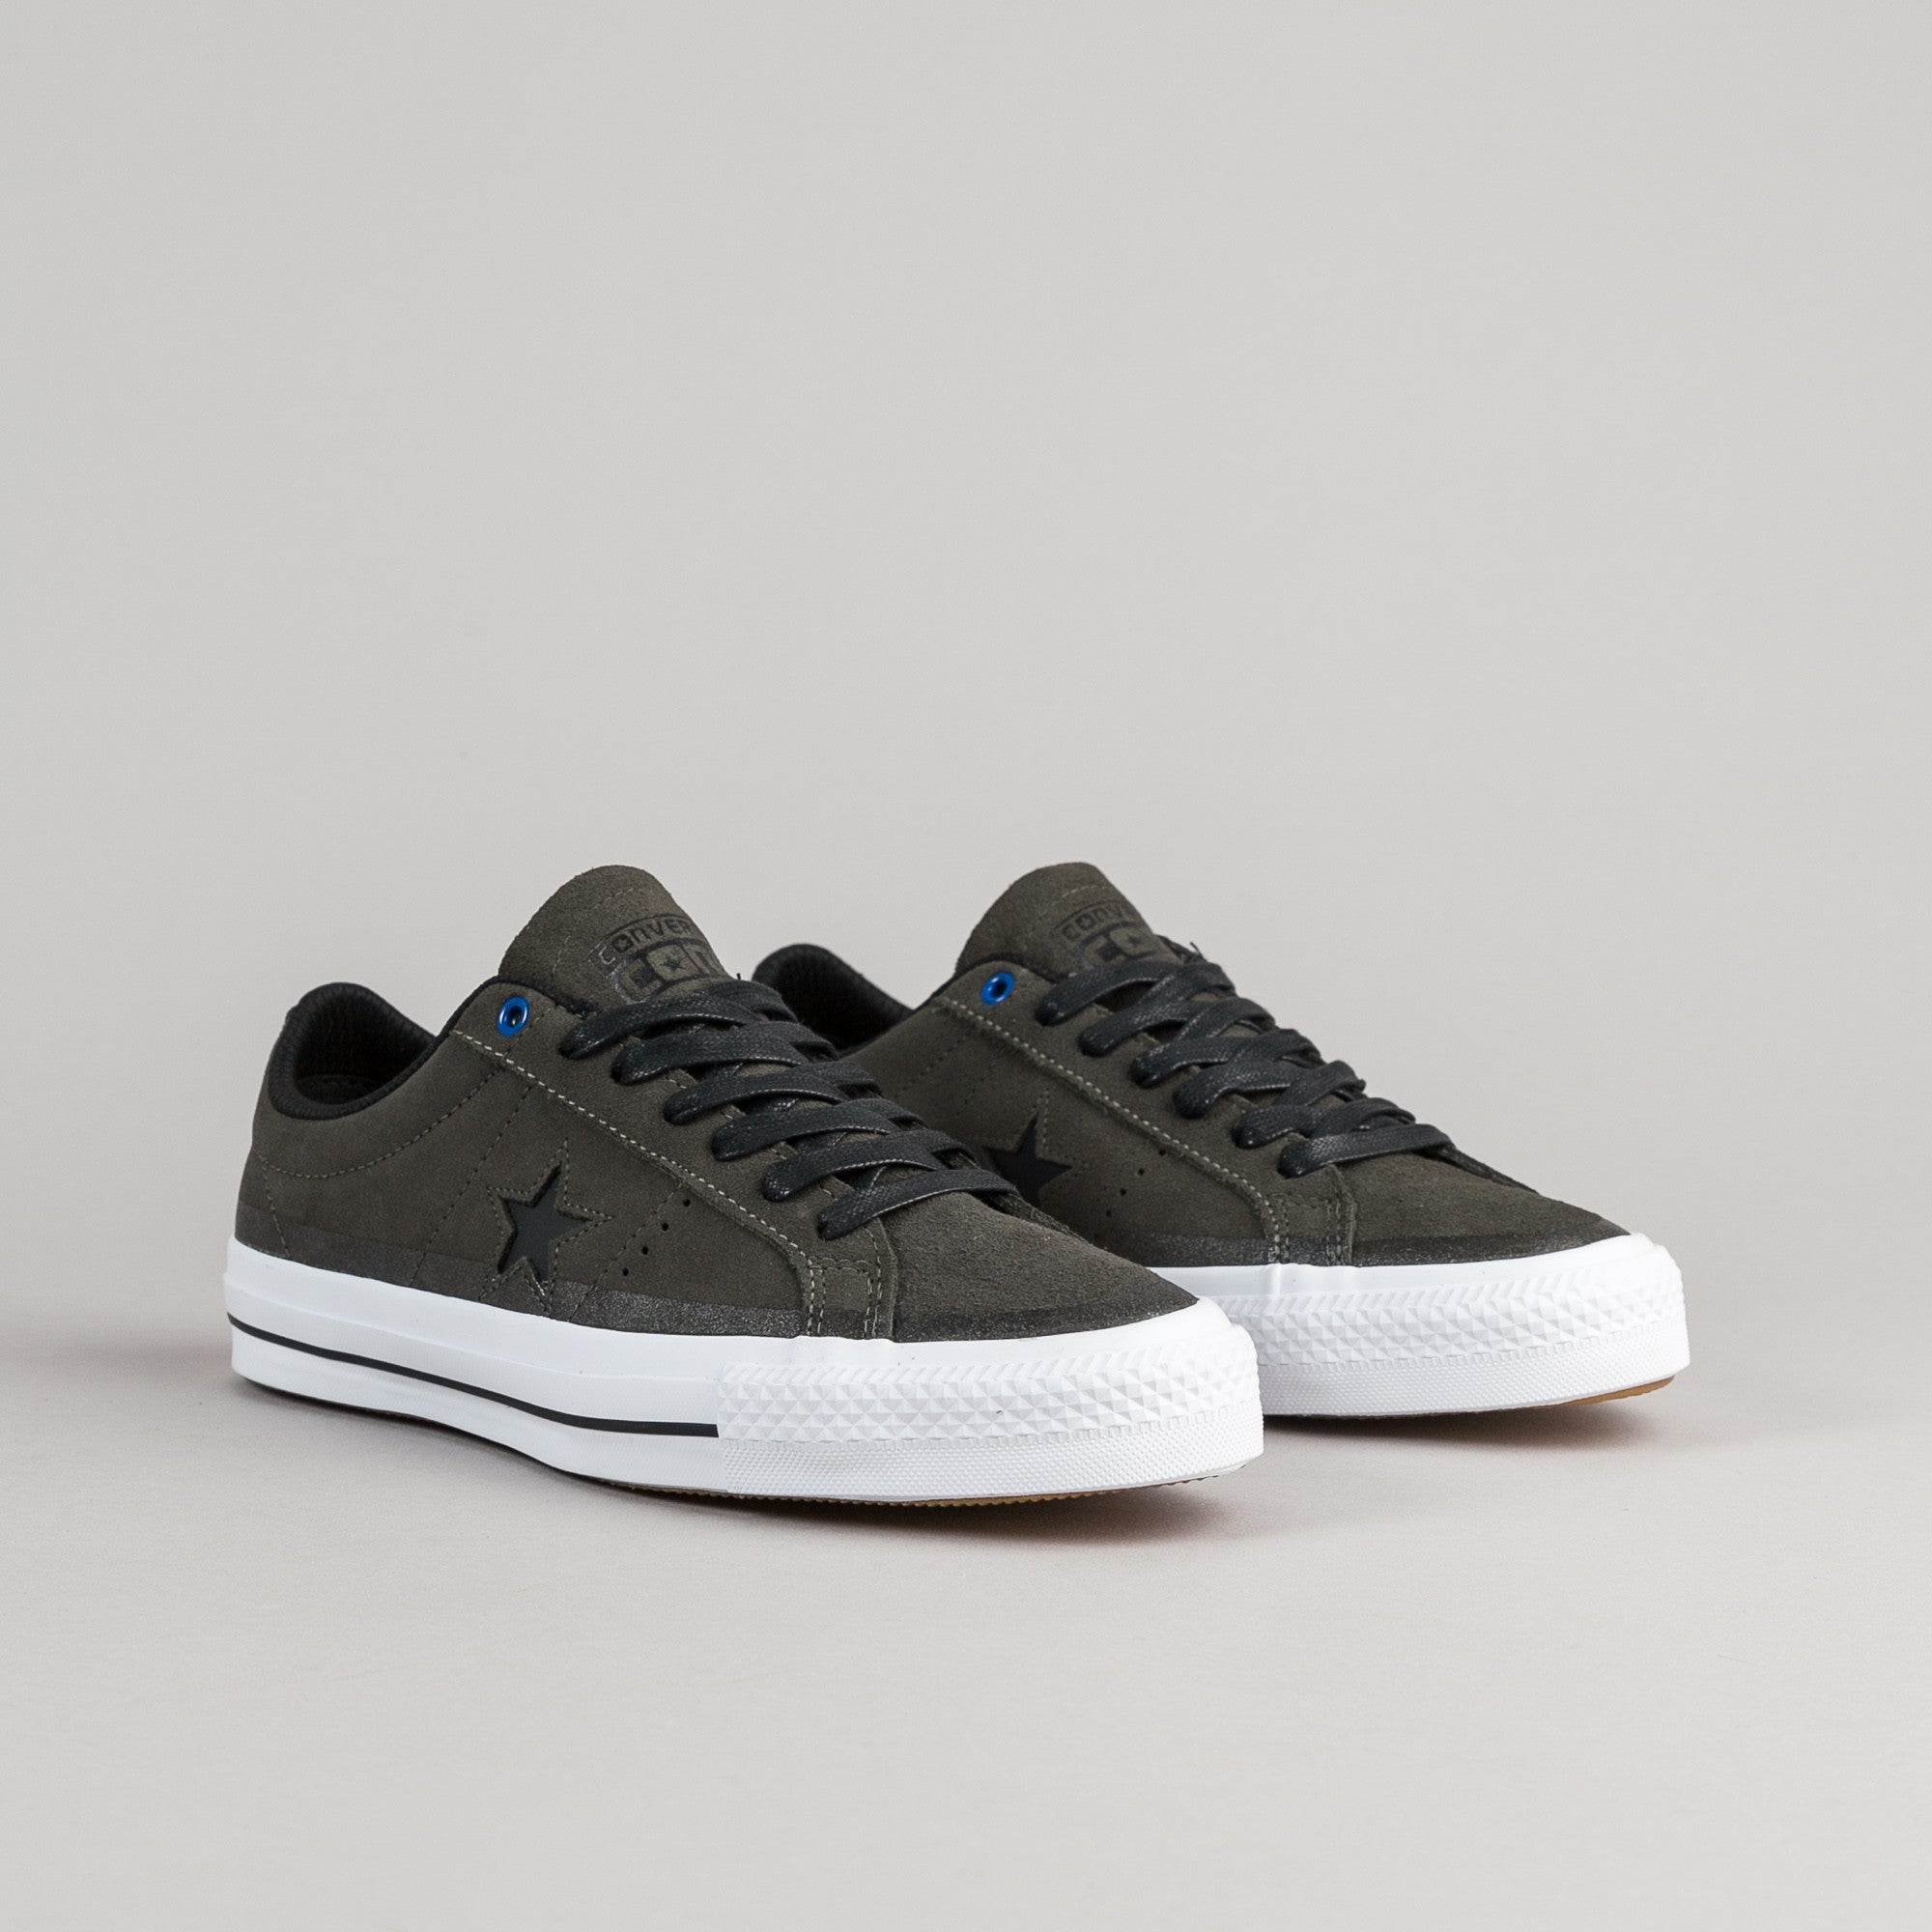 Converse One Star Pro Suede OX Shoes - Cast Iron / Black